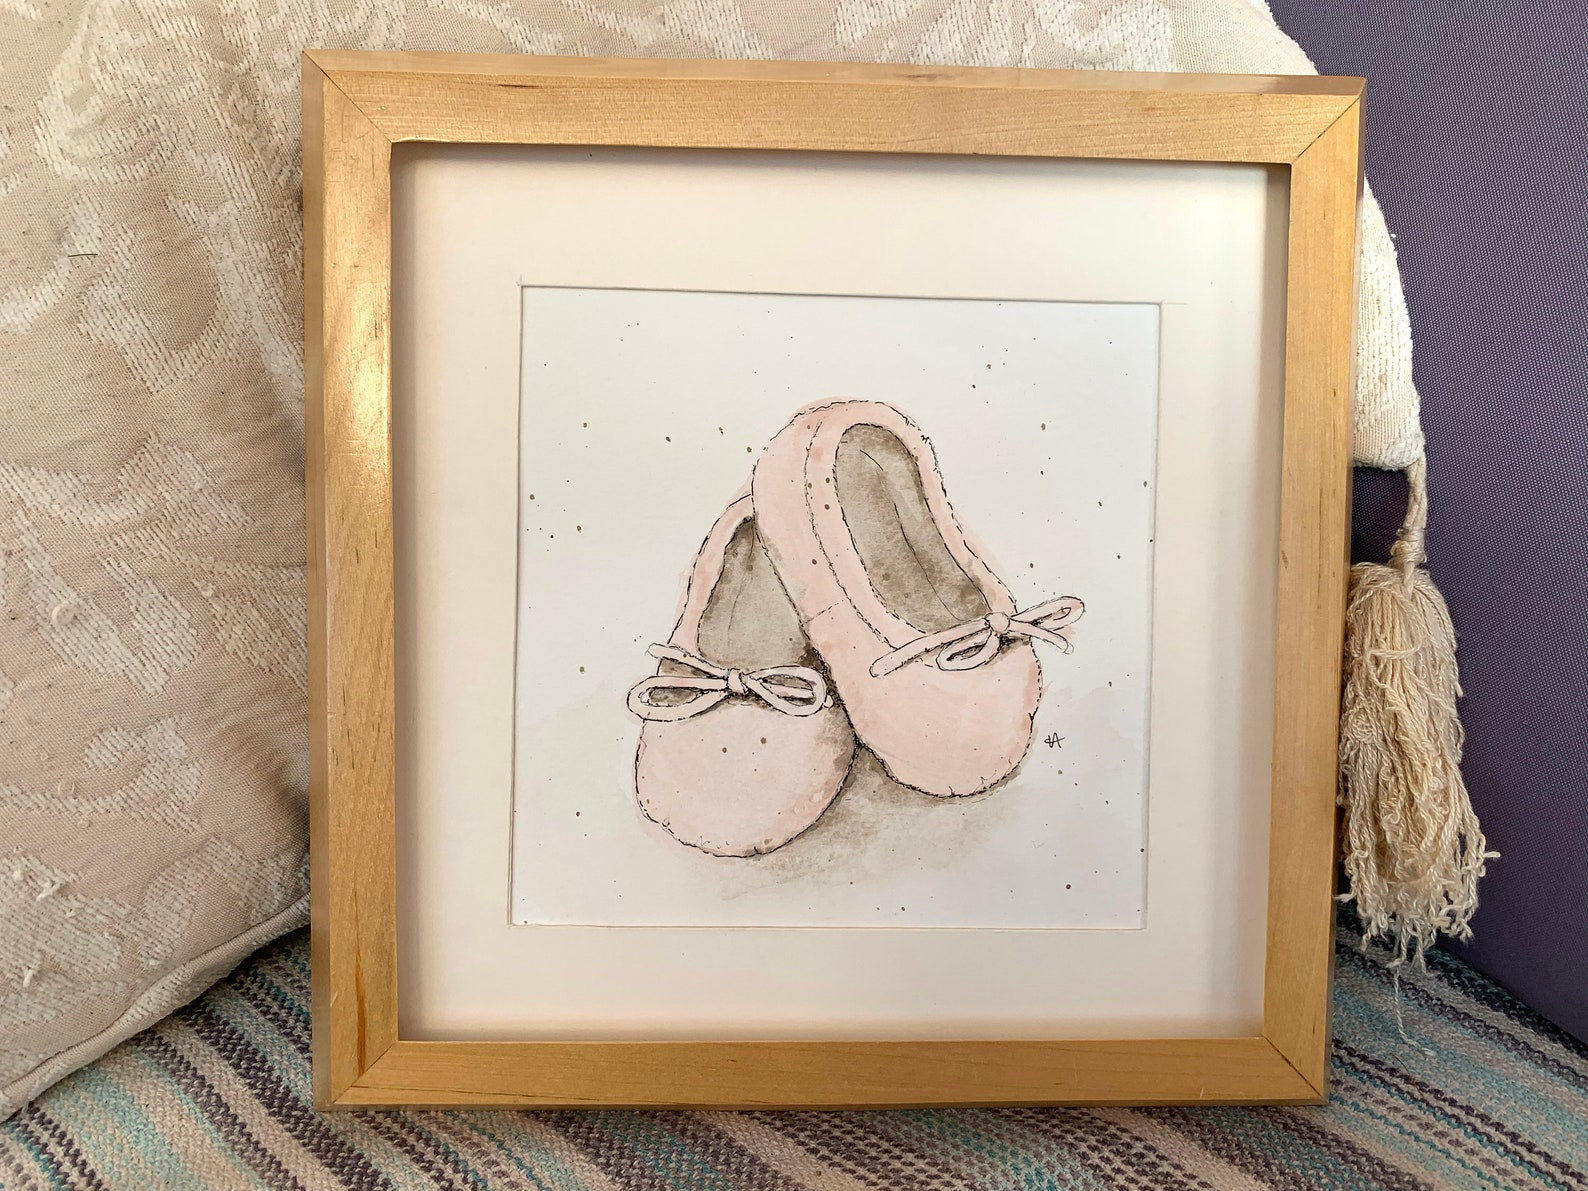 original watercolour painting of baby ballet pumps, framed in up cycled pine frame ready for display (26 x 26cm)